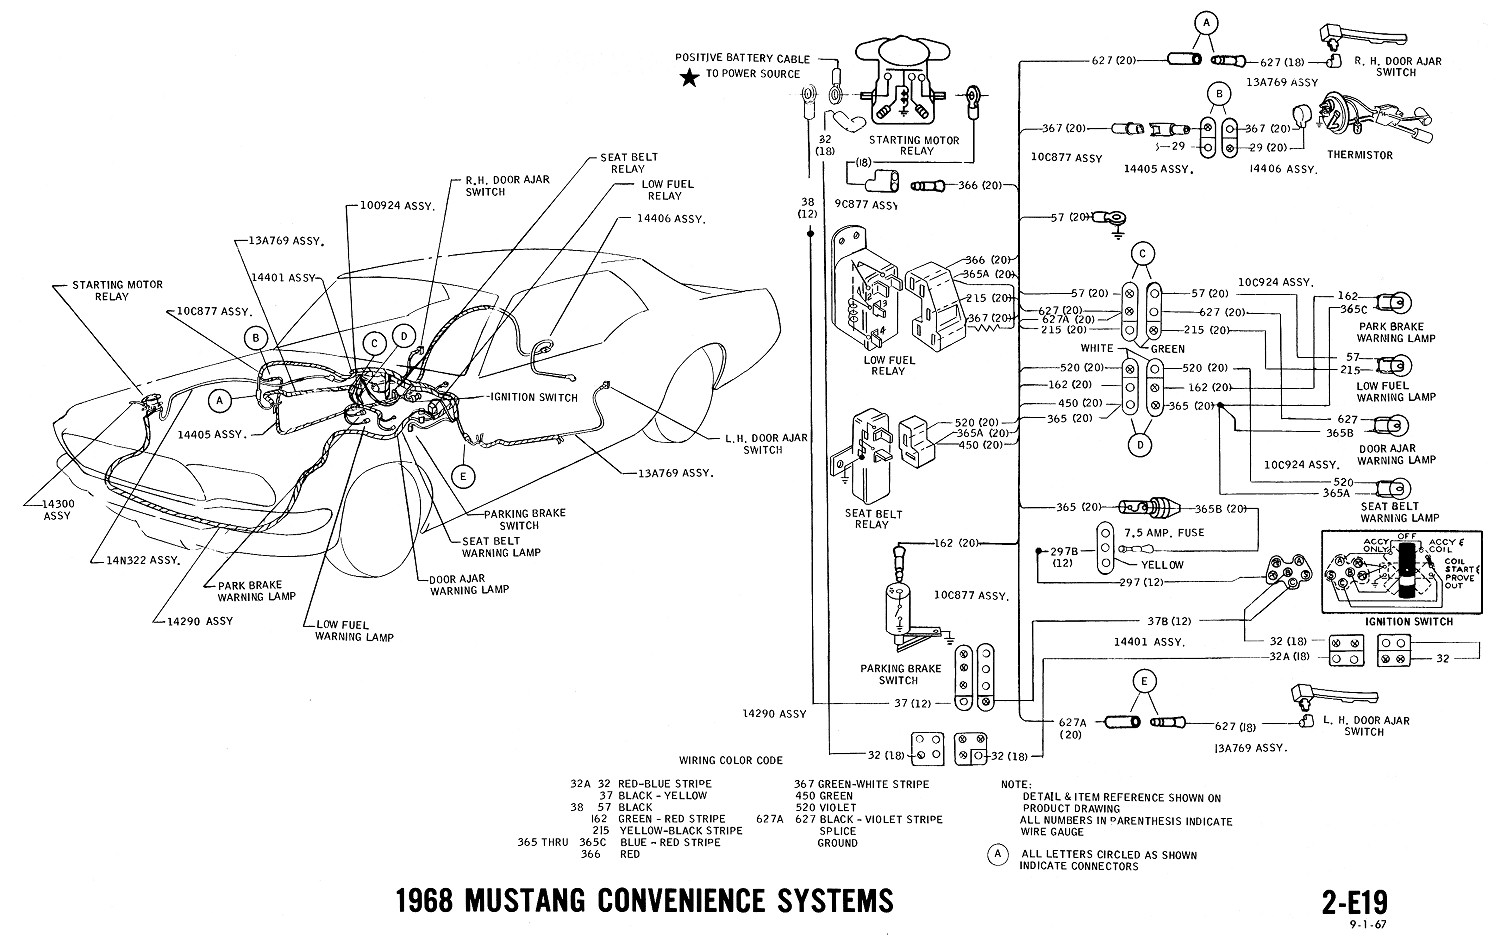 1968 mustang wiring diagrams evolving software rh peterfranza com 1966 mustang alternator wiring 1968 mustang alternator wiring diagram